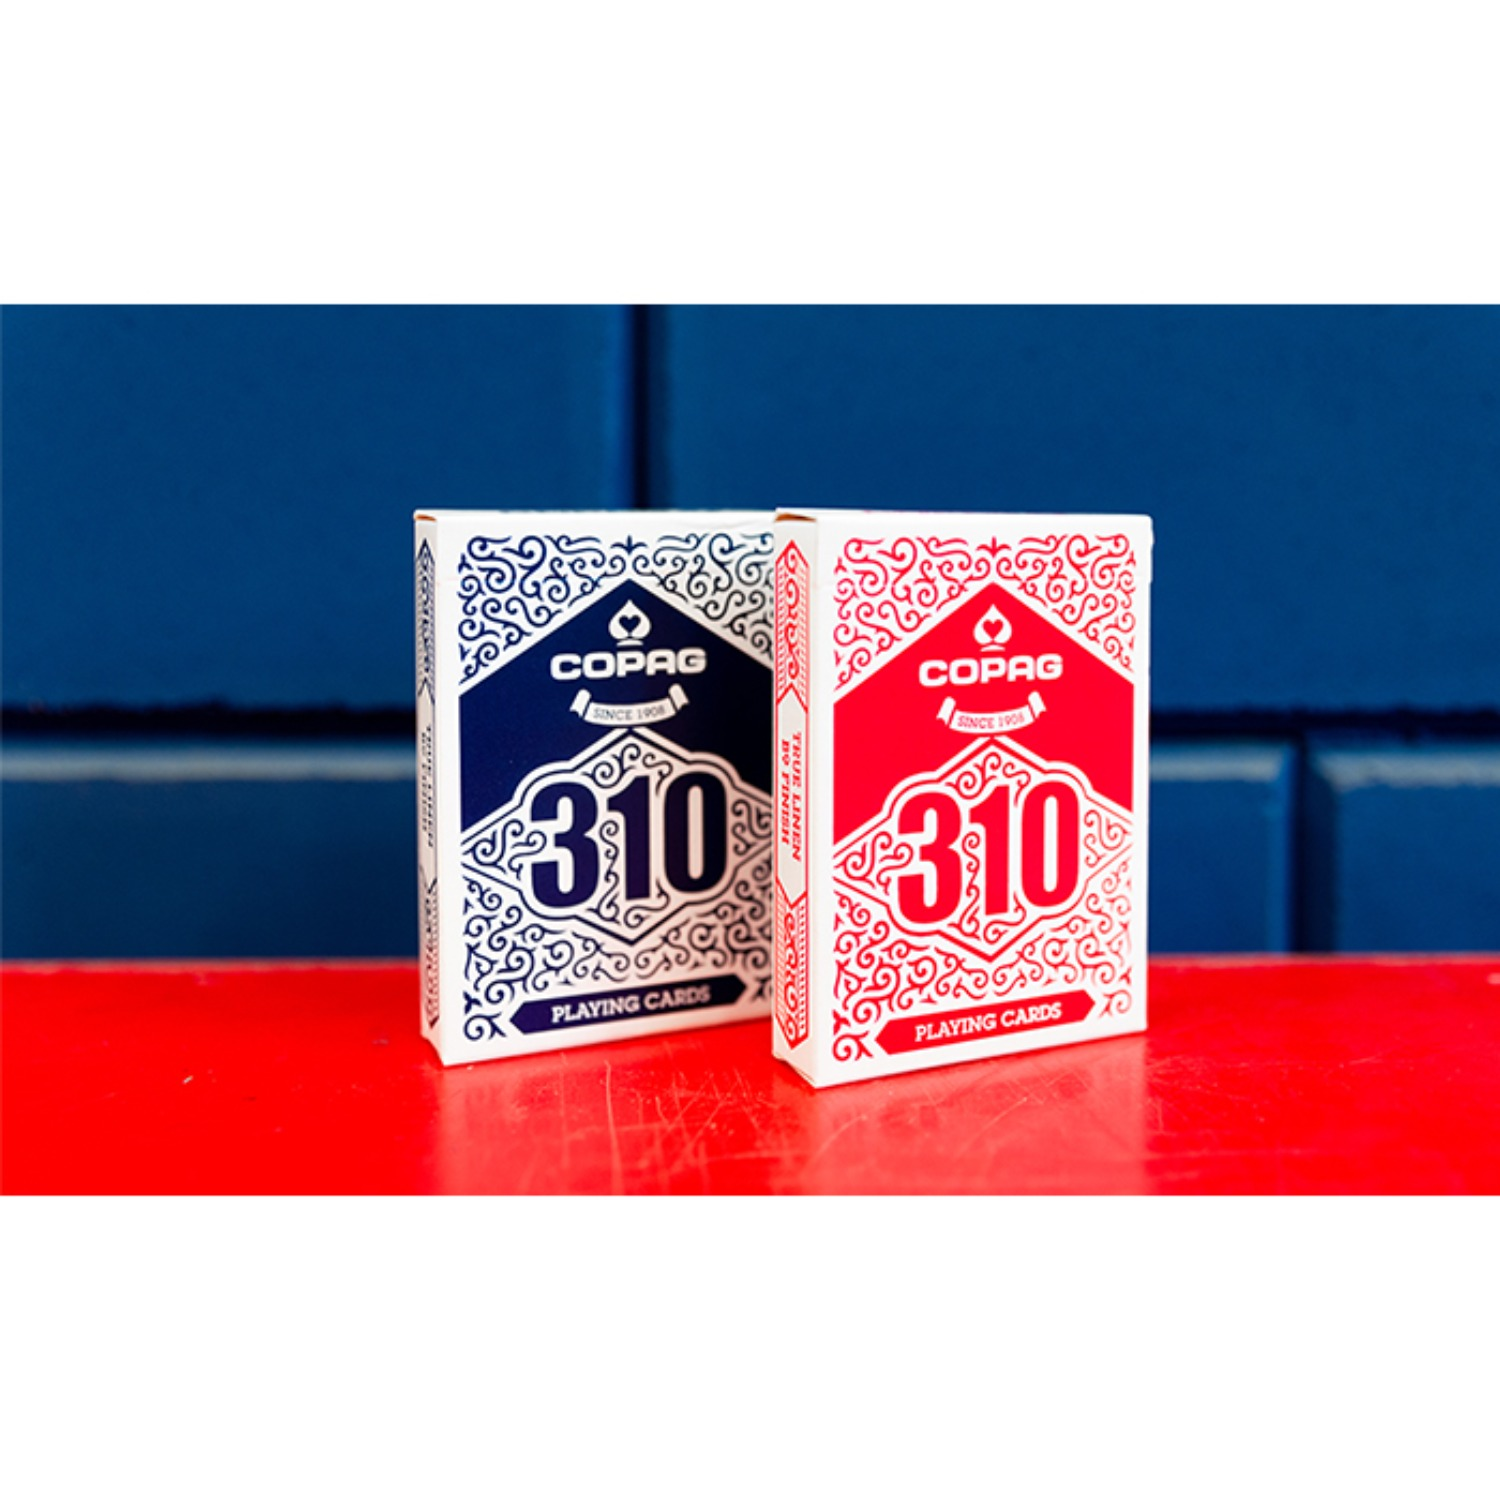 [코팩310 슬림라인]COPAG 310 SlimLine Playing Cards (Blue/Red)